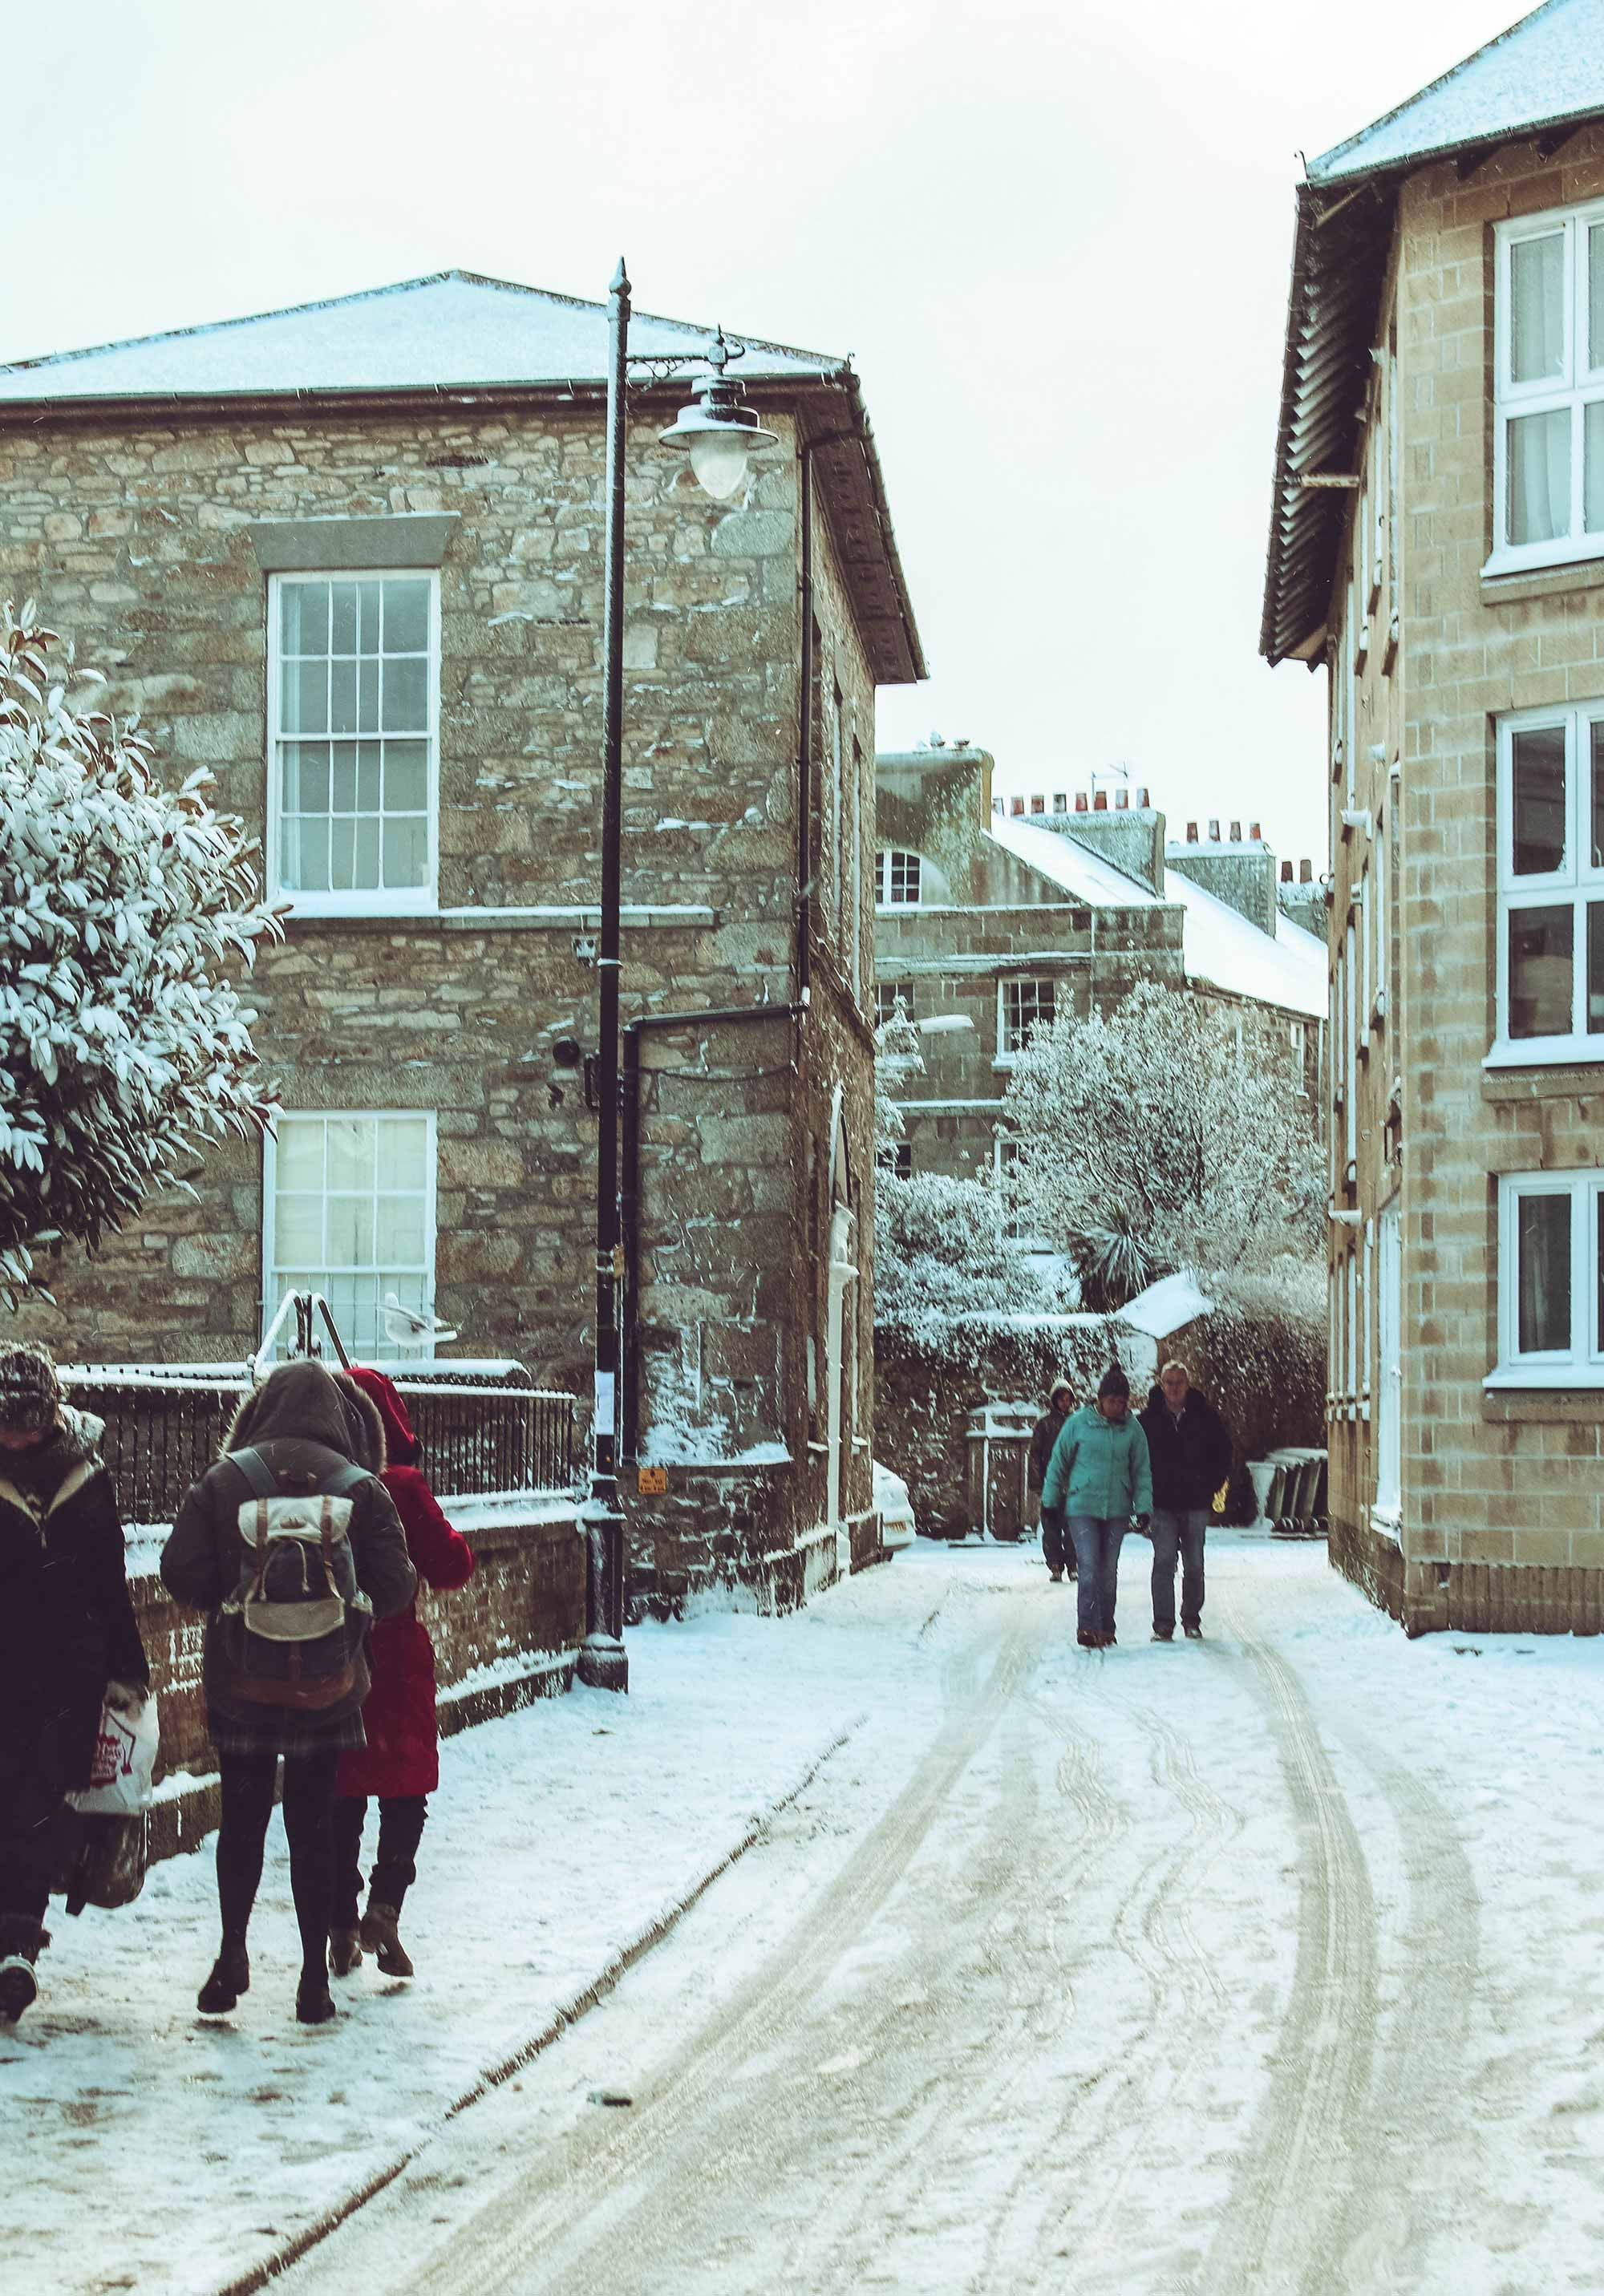 People walking on snow covered street photo